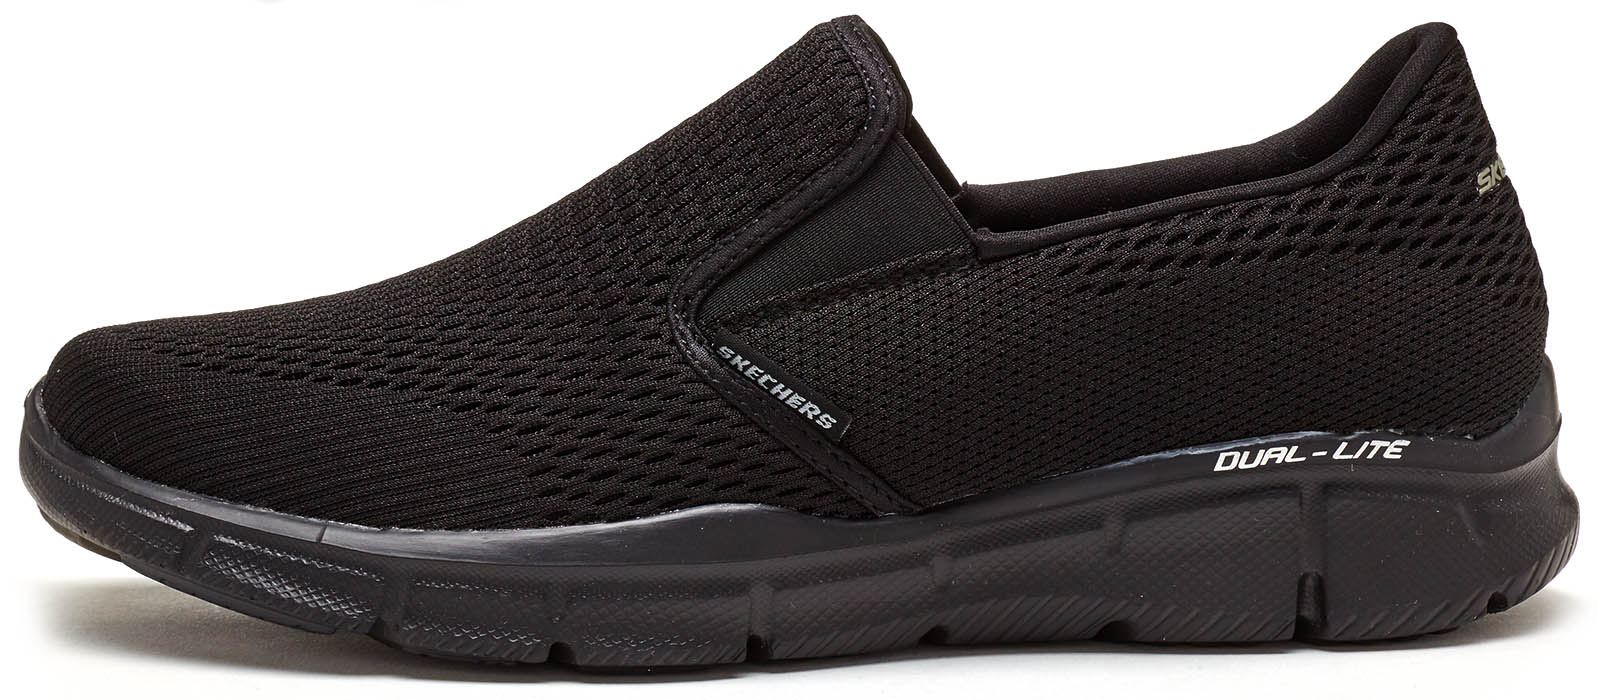 skechers equalizer memory foam